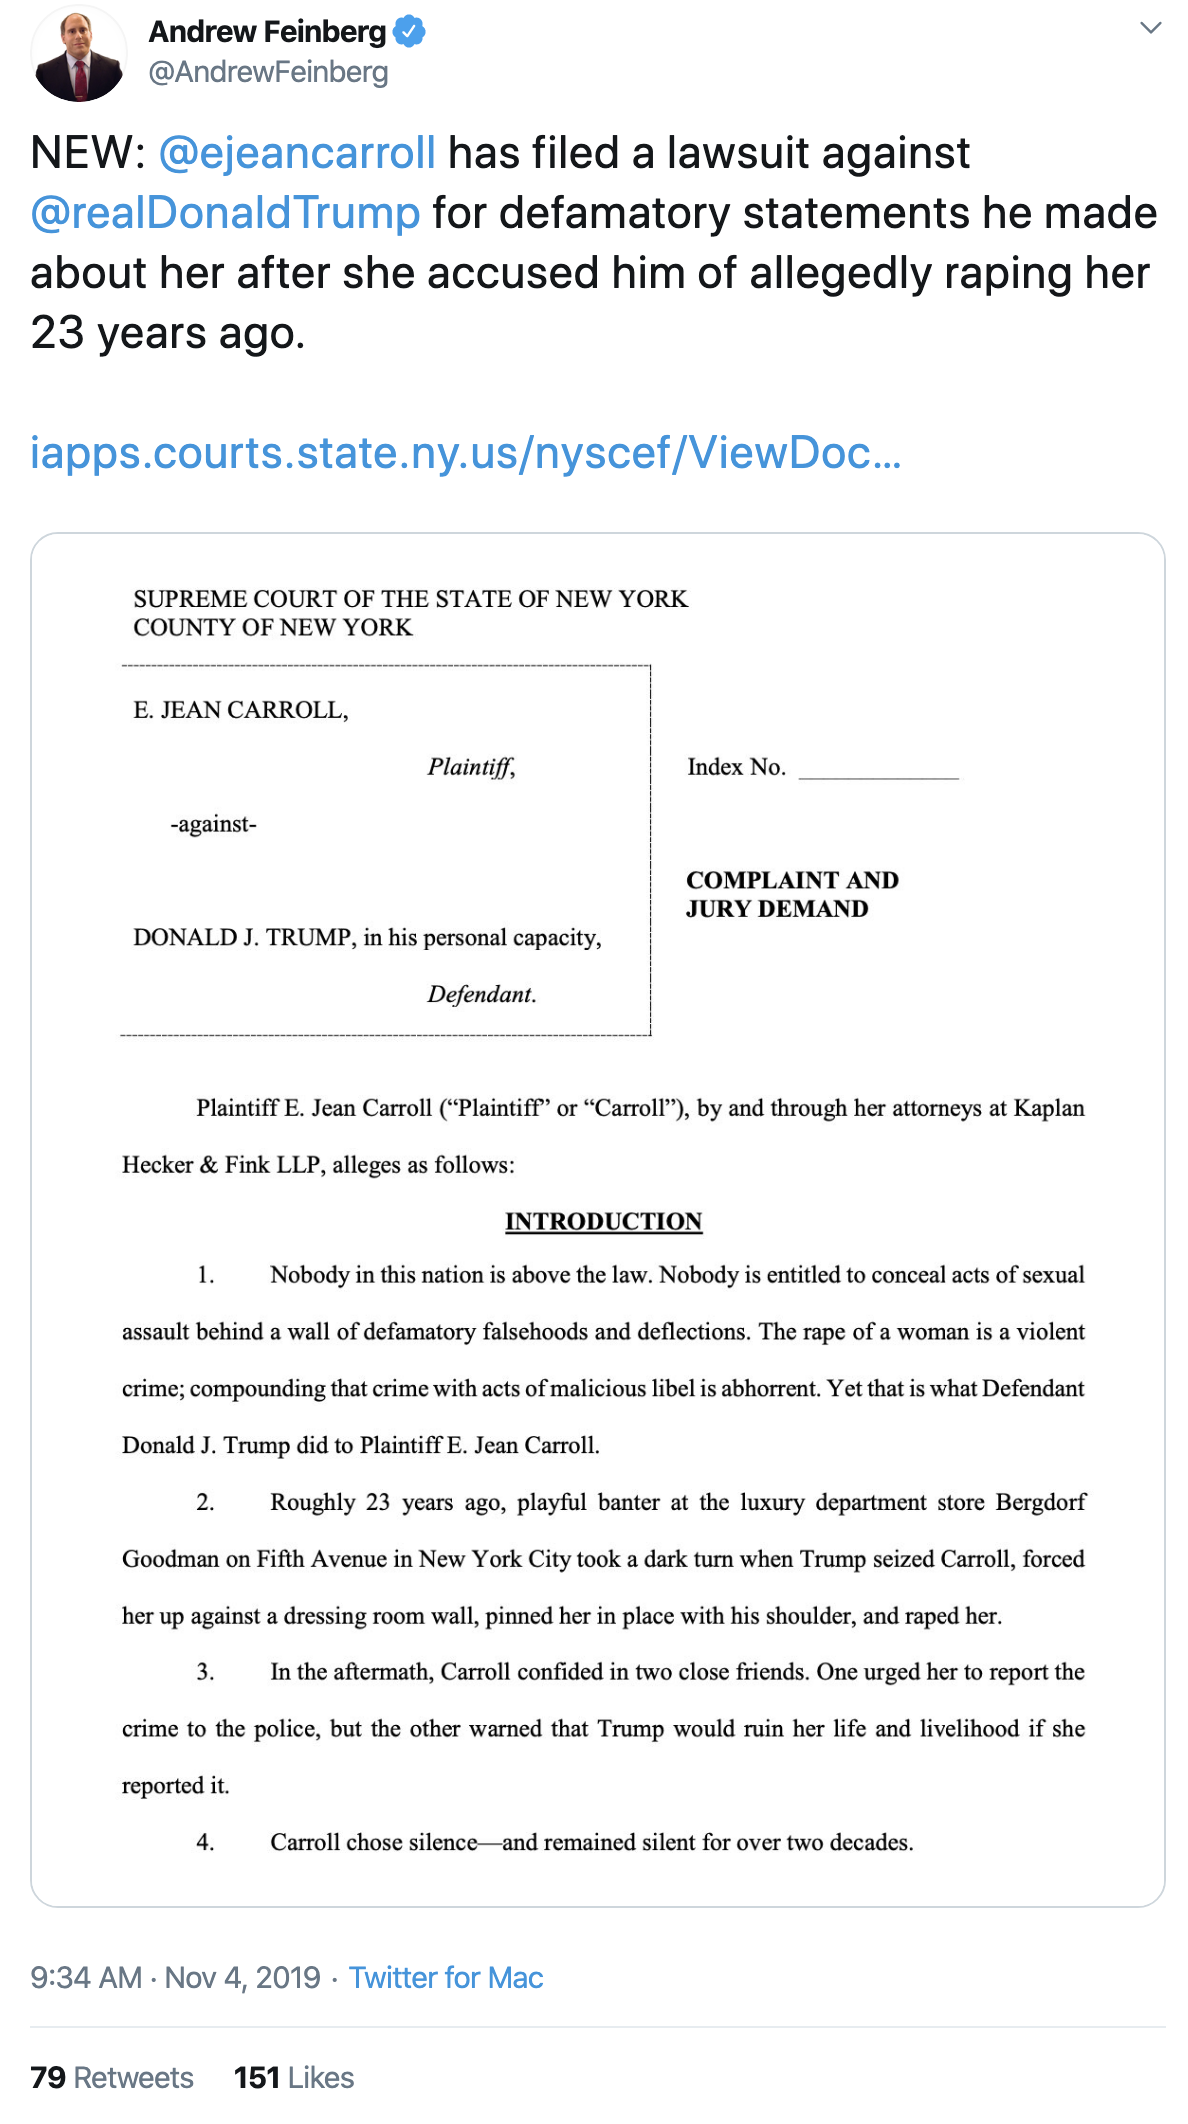 Screen-Shot-2019-11-04-at-10.12.26-AM Trump Accuser Sues Him For Defamation Of Character Corruption Crime Domestic Policy Donald Trump Election 2016 Featured Feminism Me Too Politics Sexism Social Media Supreme Court Top Stories Women's Rights